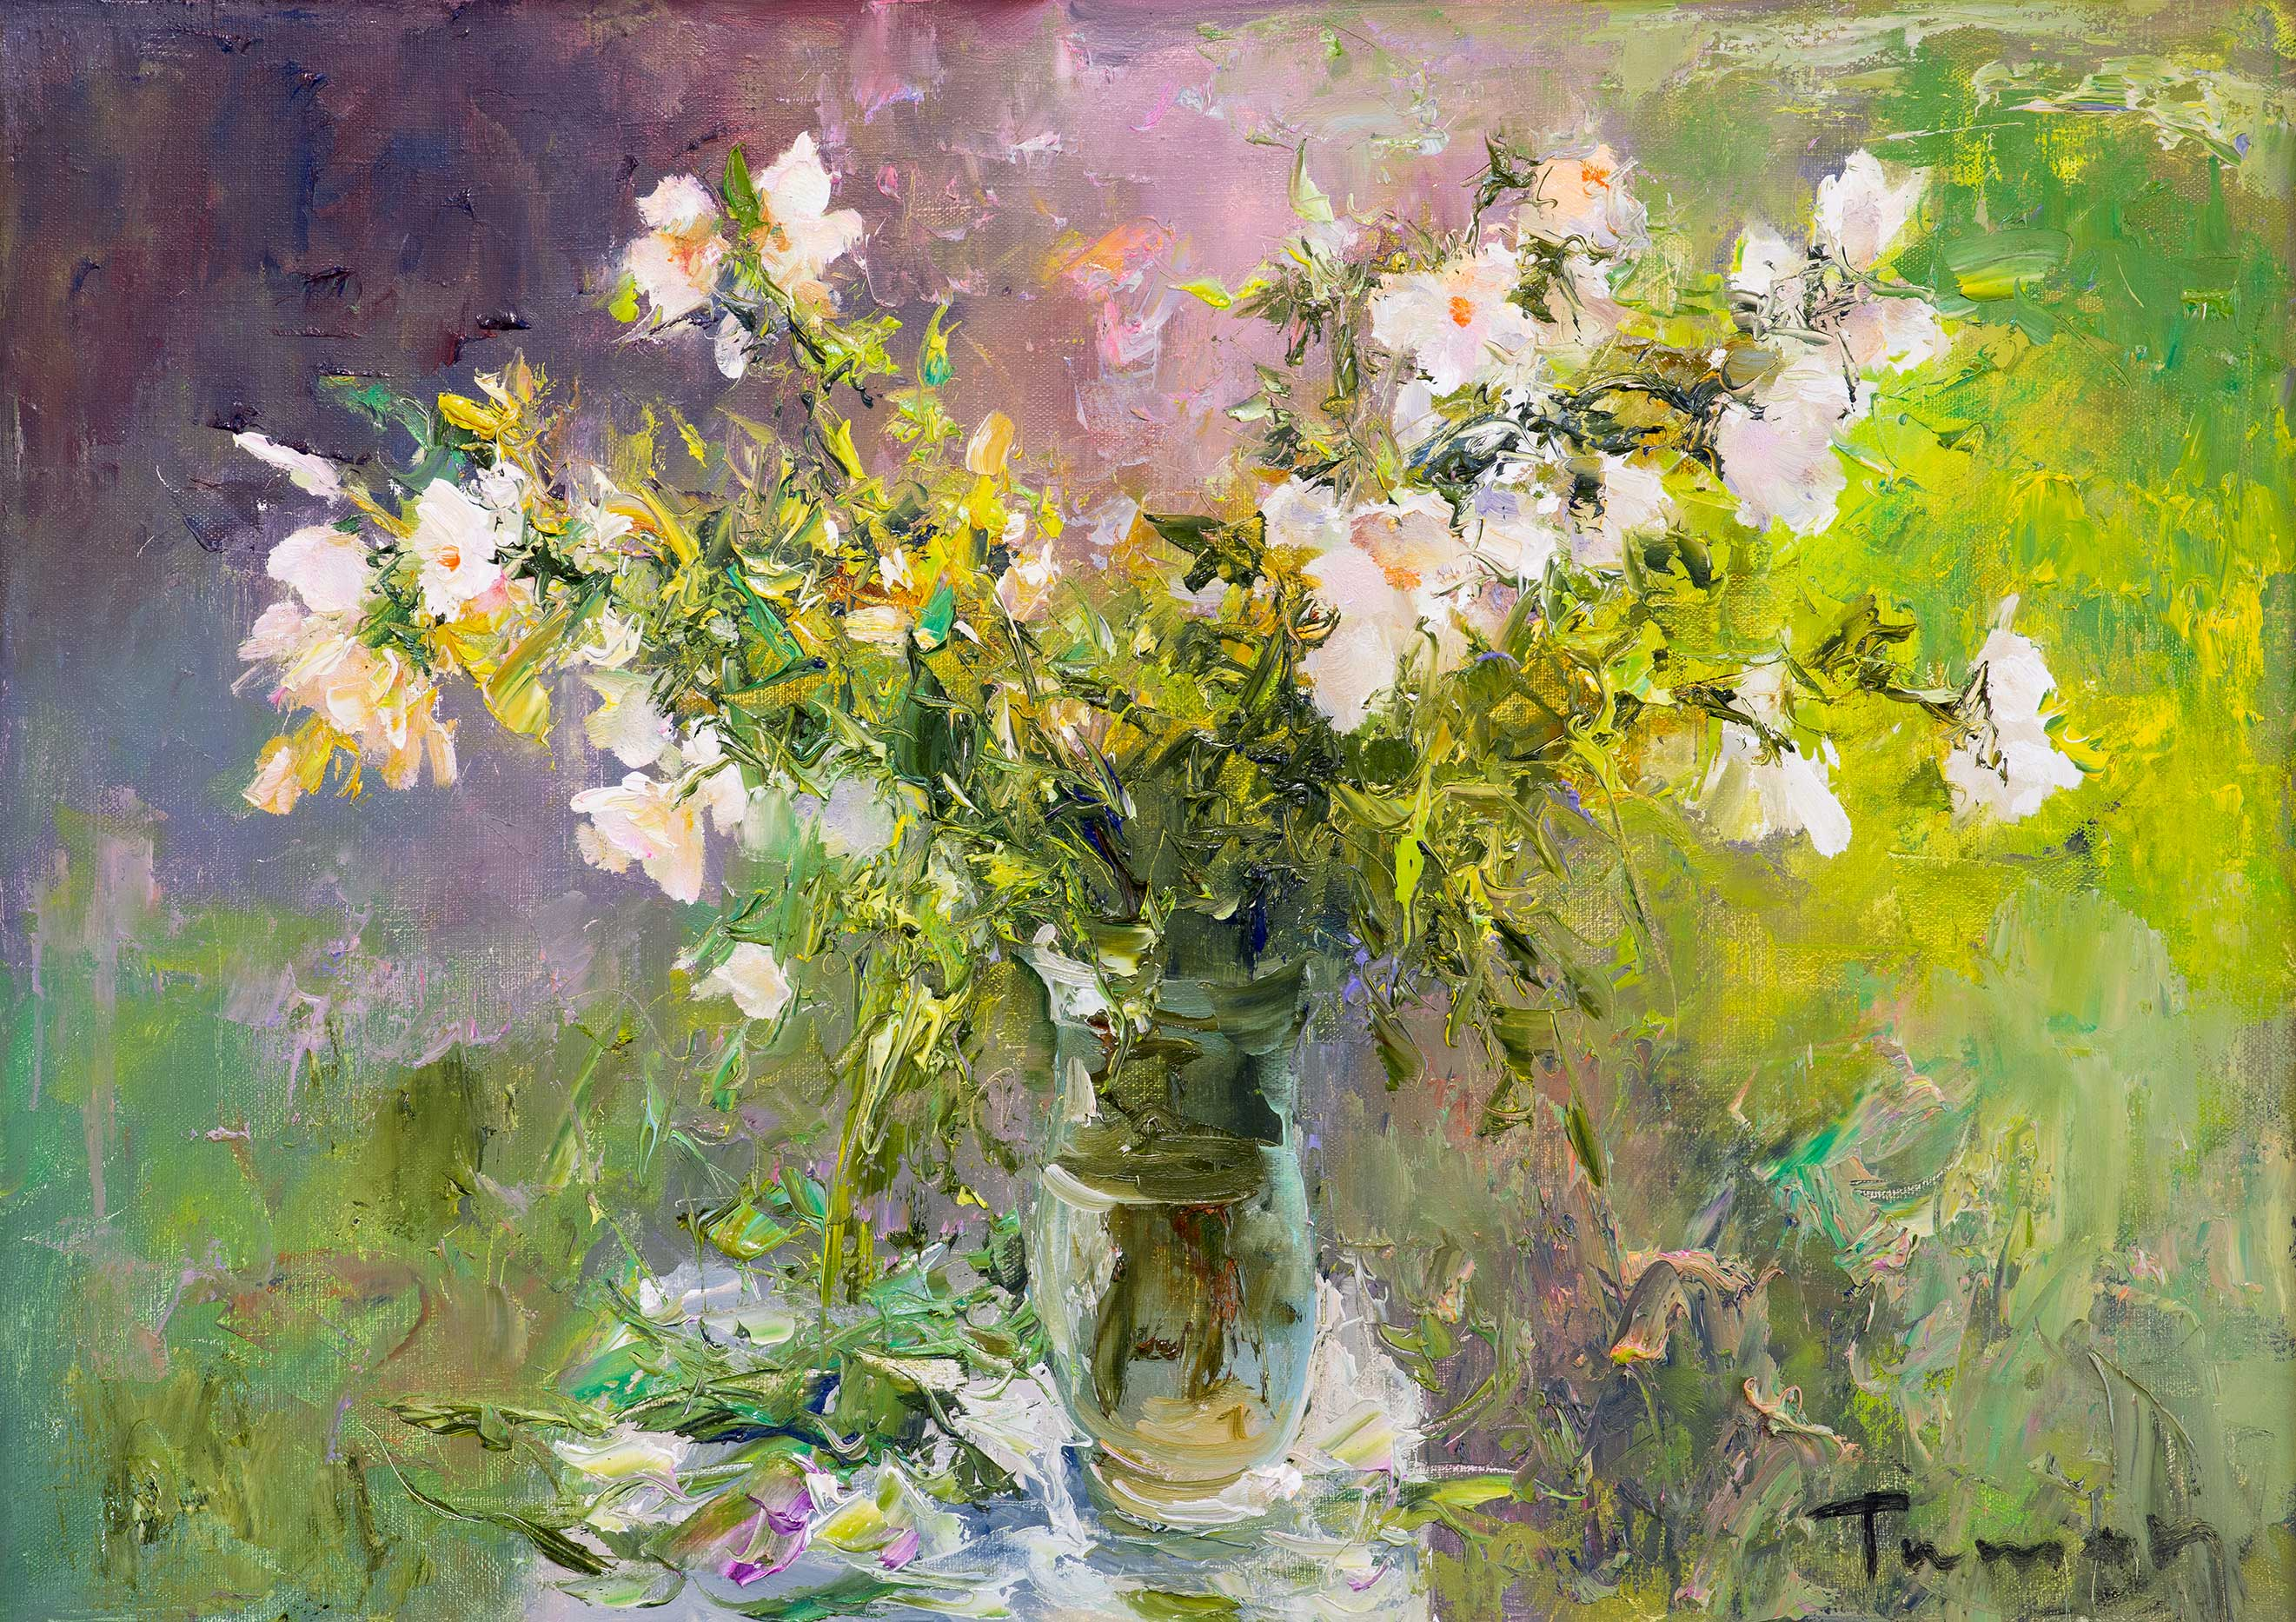 Morning dew, Tuman Zhumabaev, Buy the painting Oil